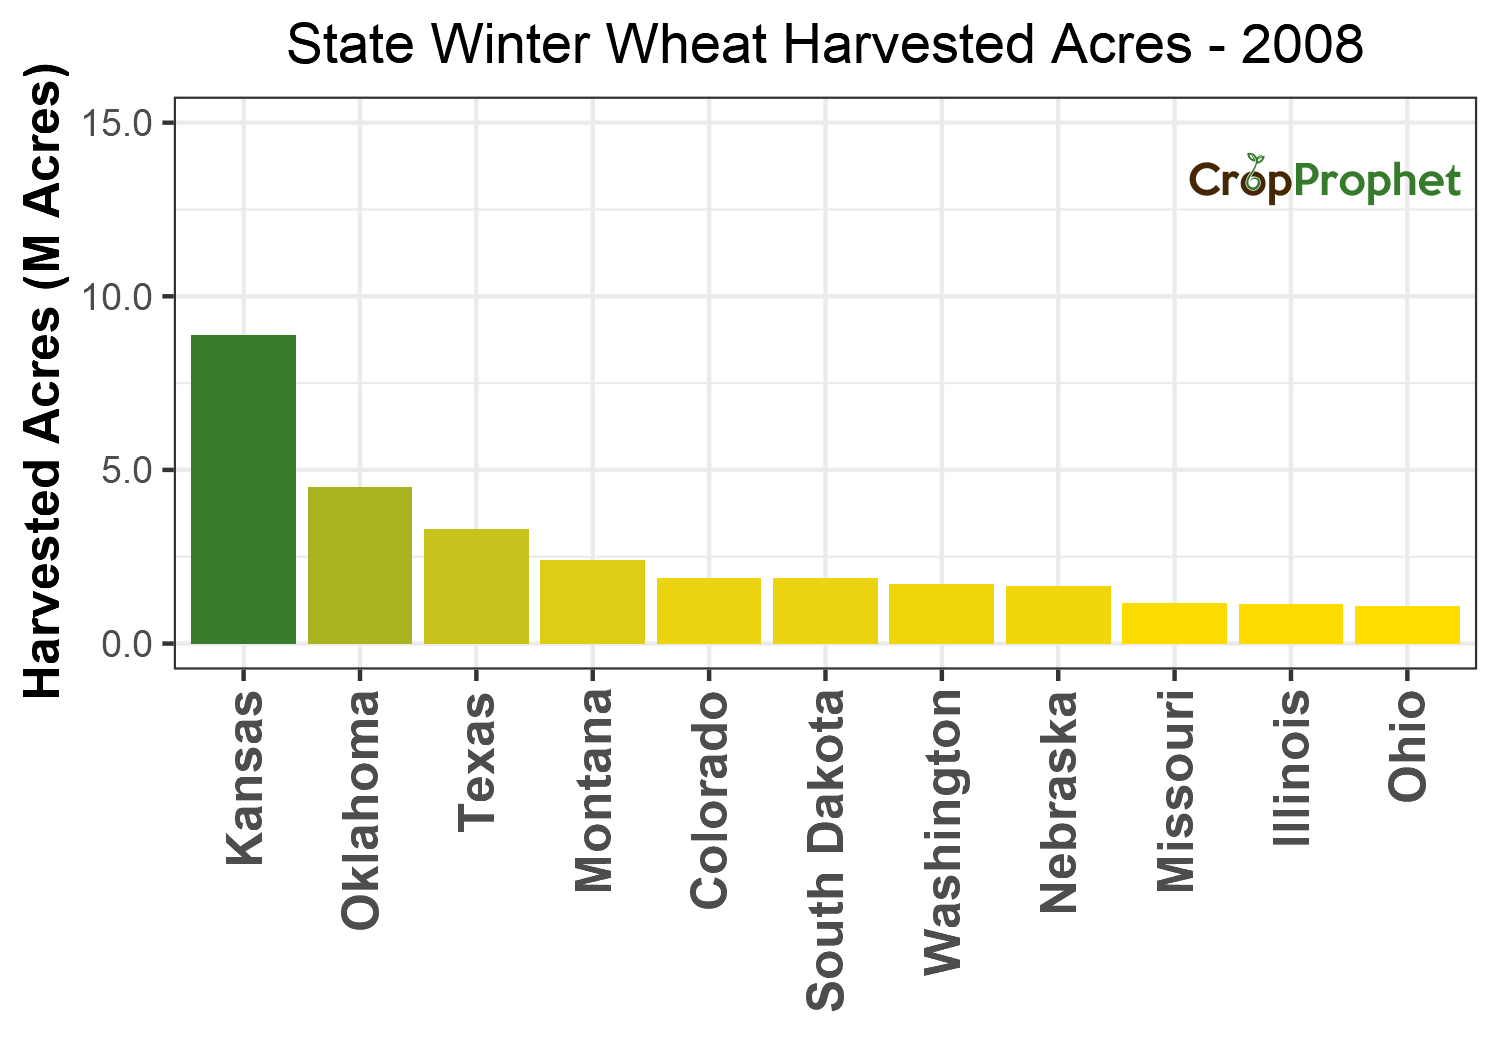 Winter wheat Harvested Acres by State - 2008 Rankings